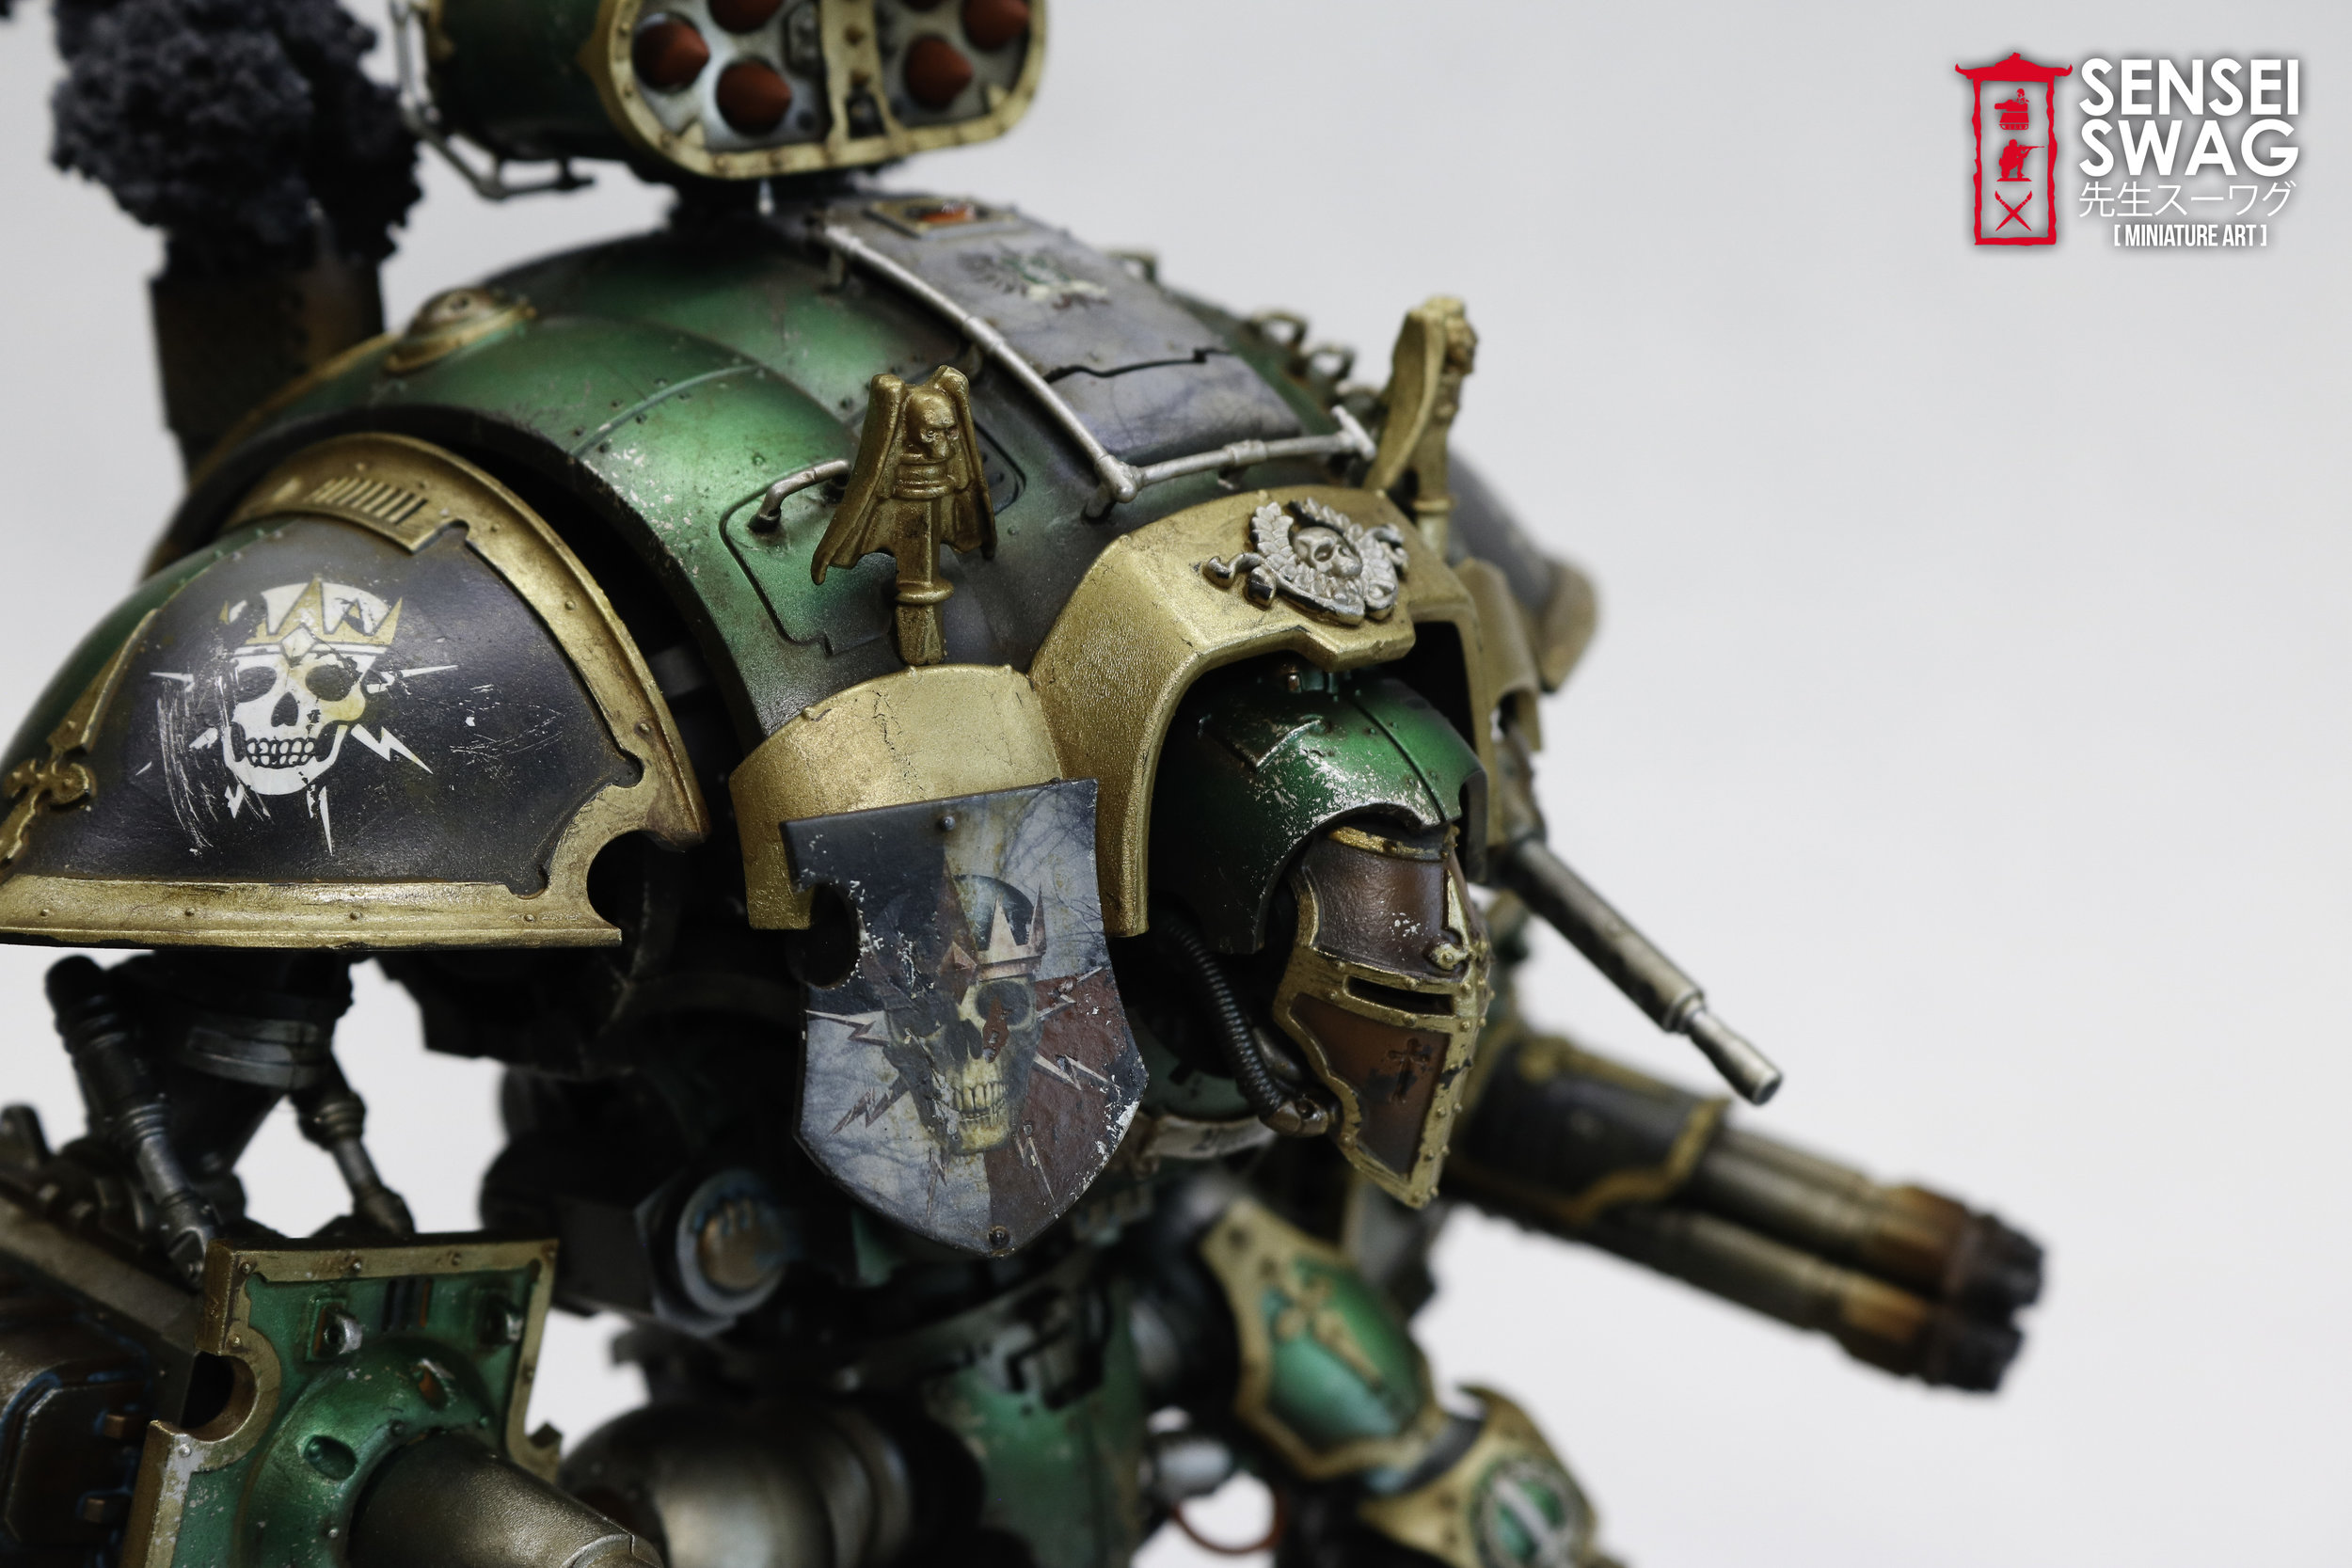 House Vyronii Imperial Knights Crusader Candy Airbrush Watermark-5.jpg